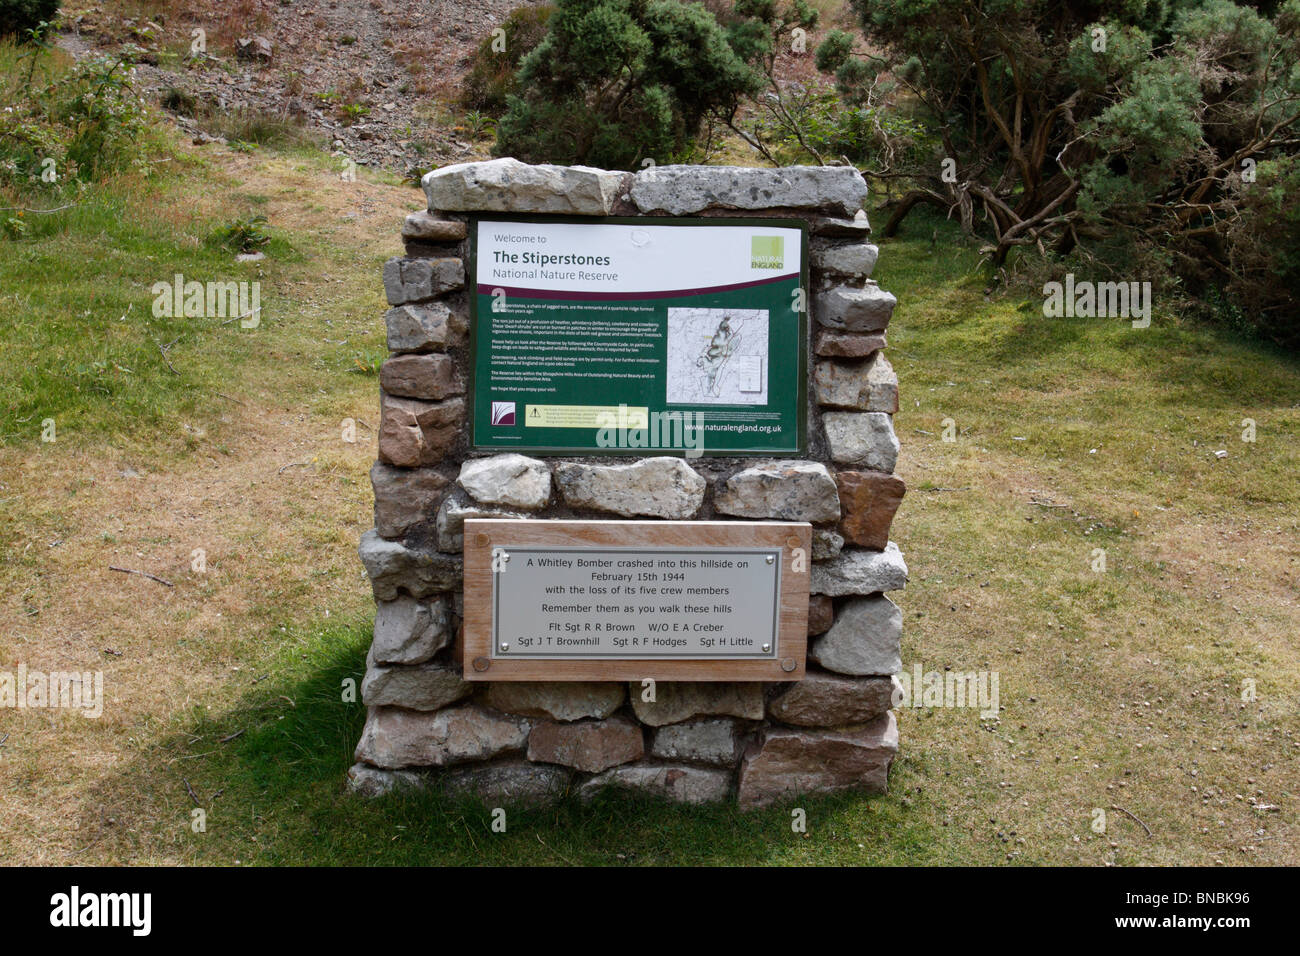 An information board and memorial to a wartime plane crash on Stiperstones, Shropshire HIlls AONB - Stock Image